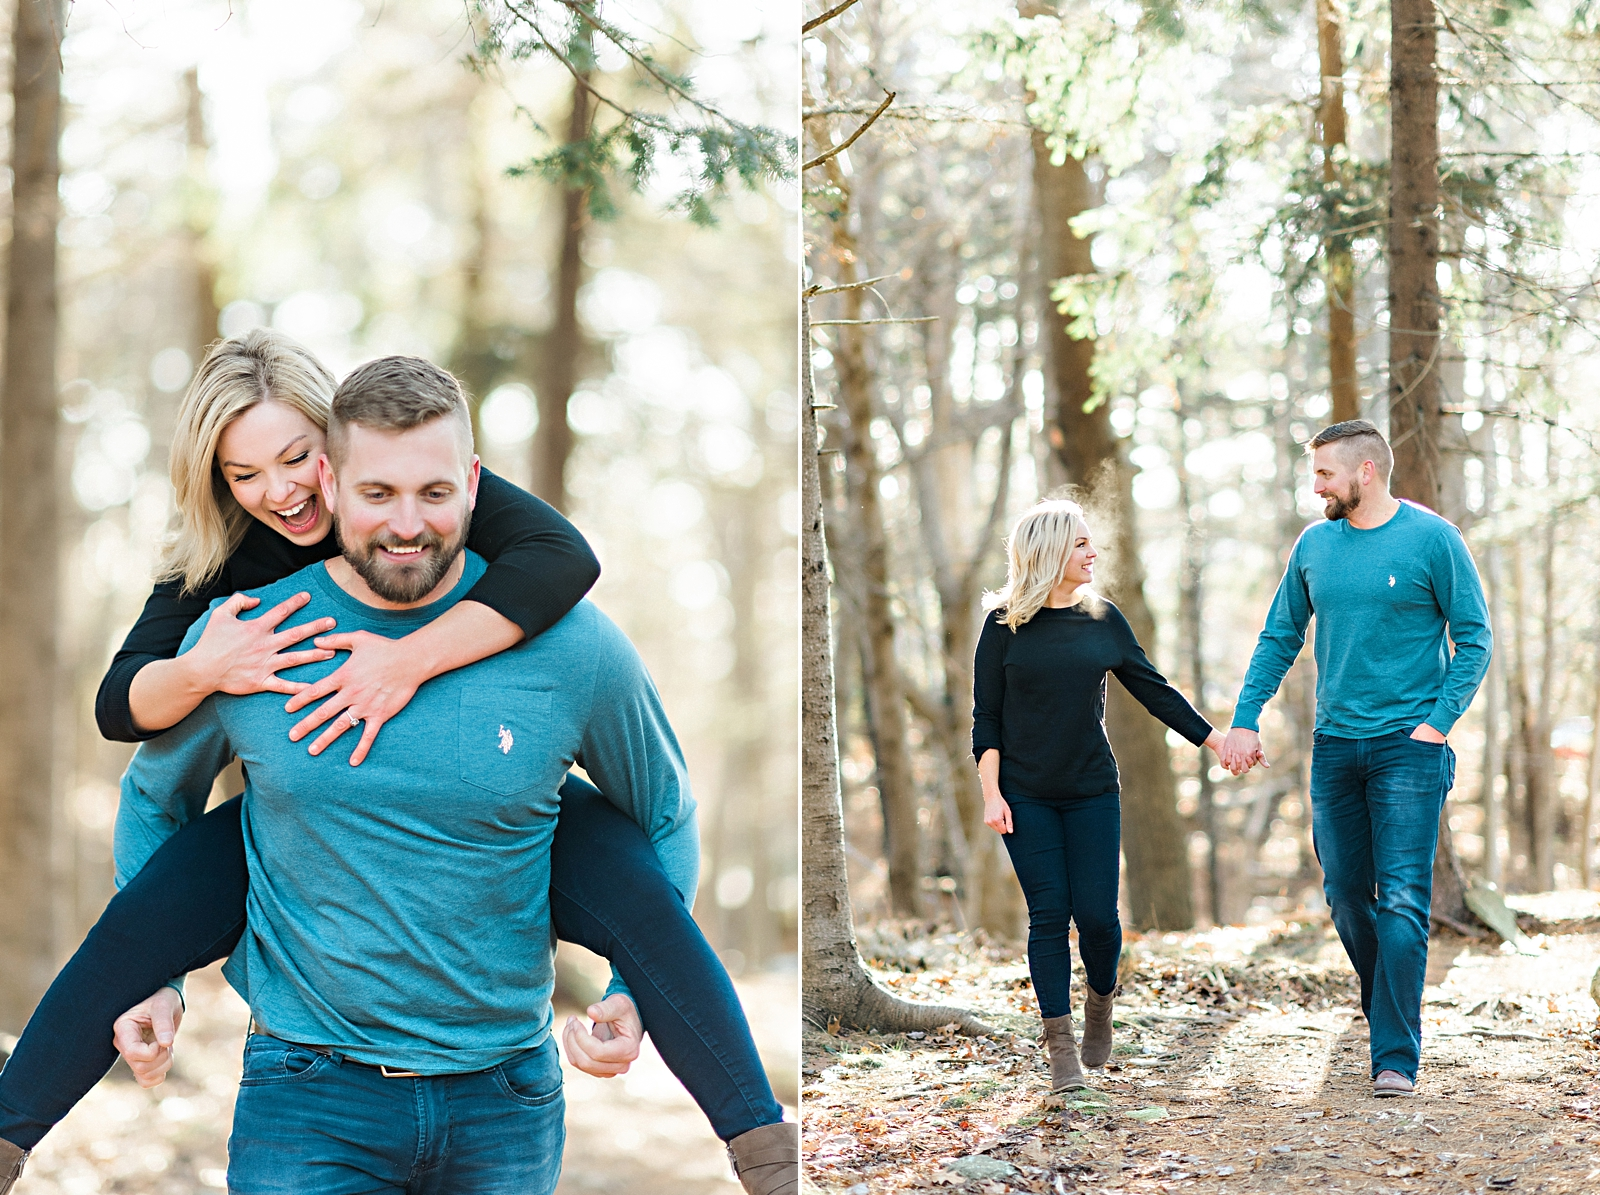 Halifax-Wedding-Photographer_Rhea&Craig_Halifax Engagement Photography_021.jpg